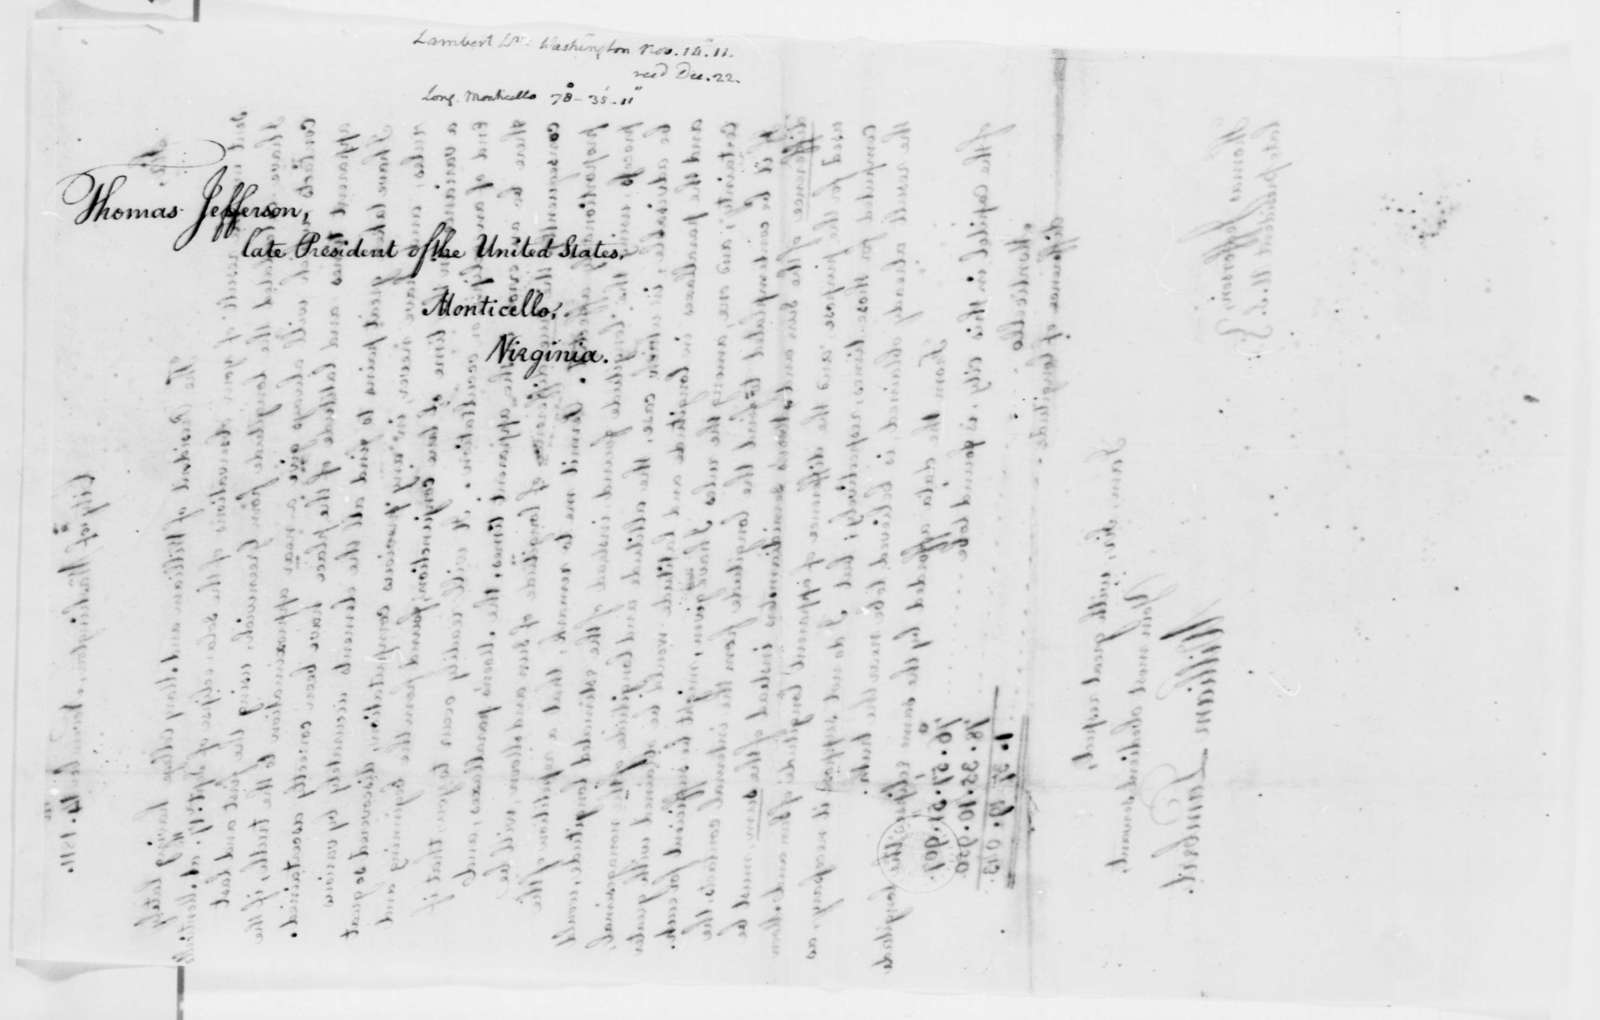 William Lambert to Thomas Jefferson, November 14, 1811, with Abstract